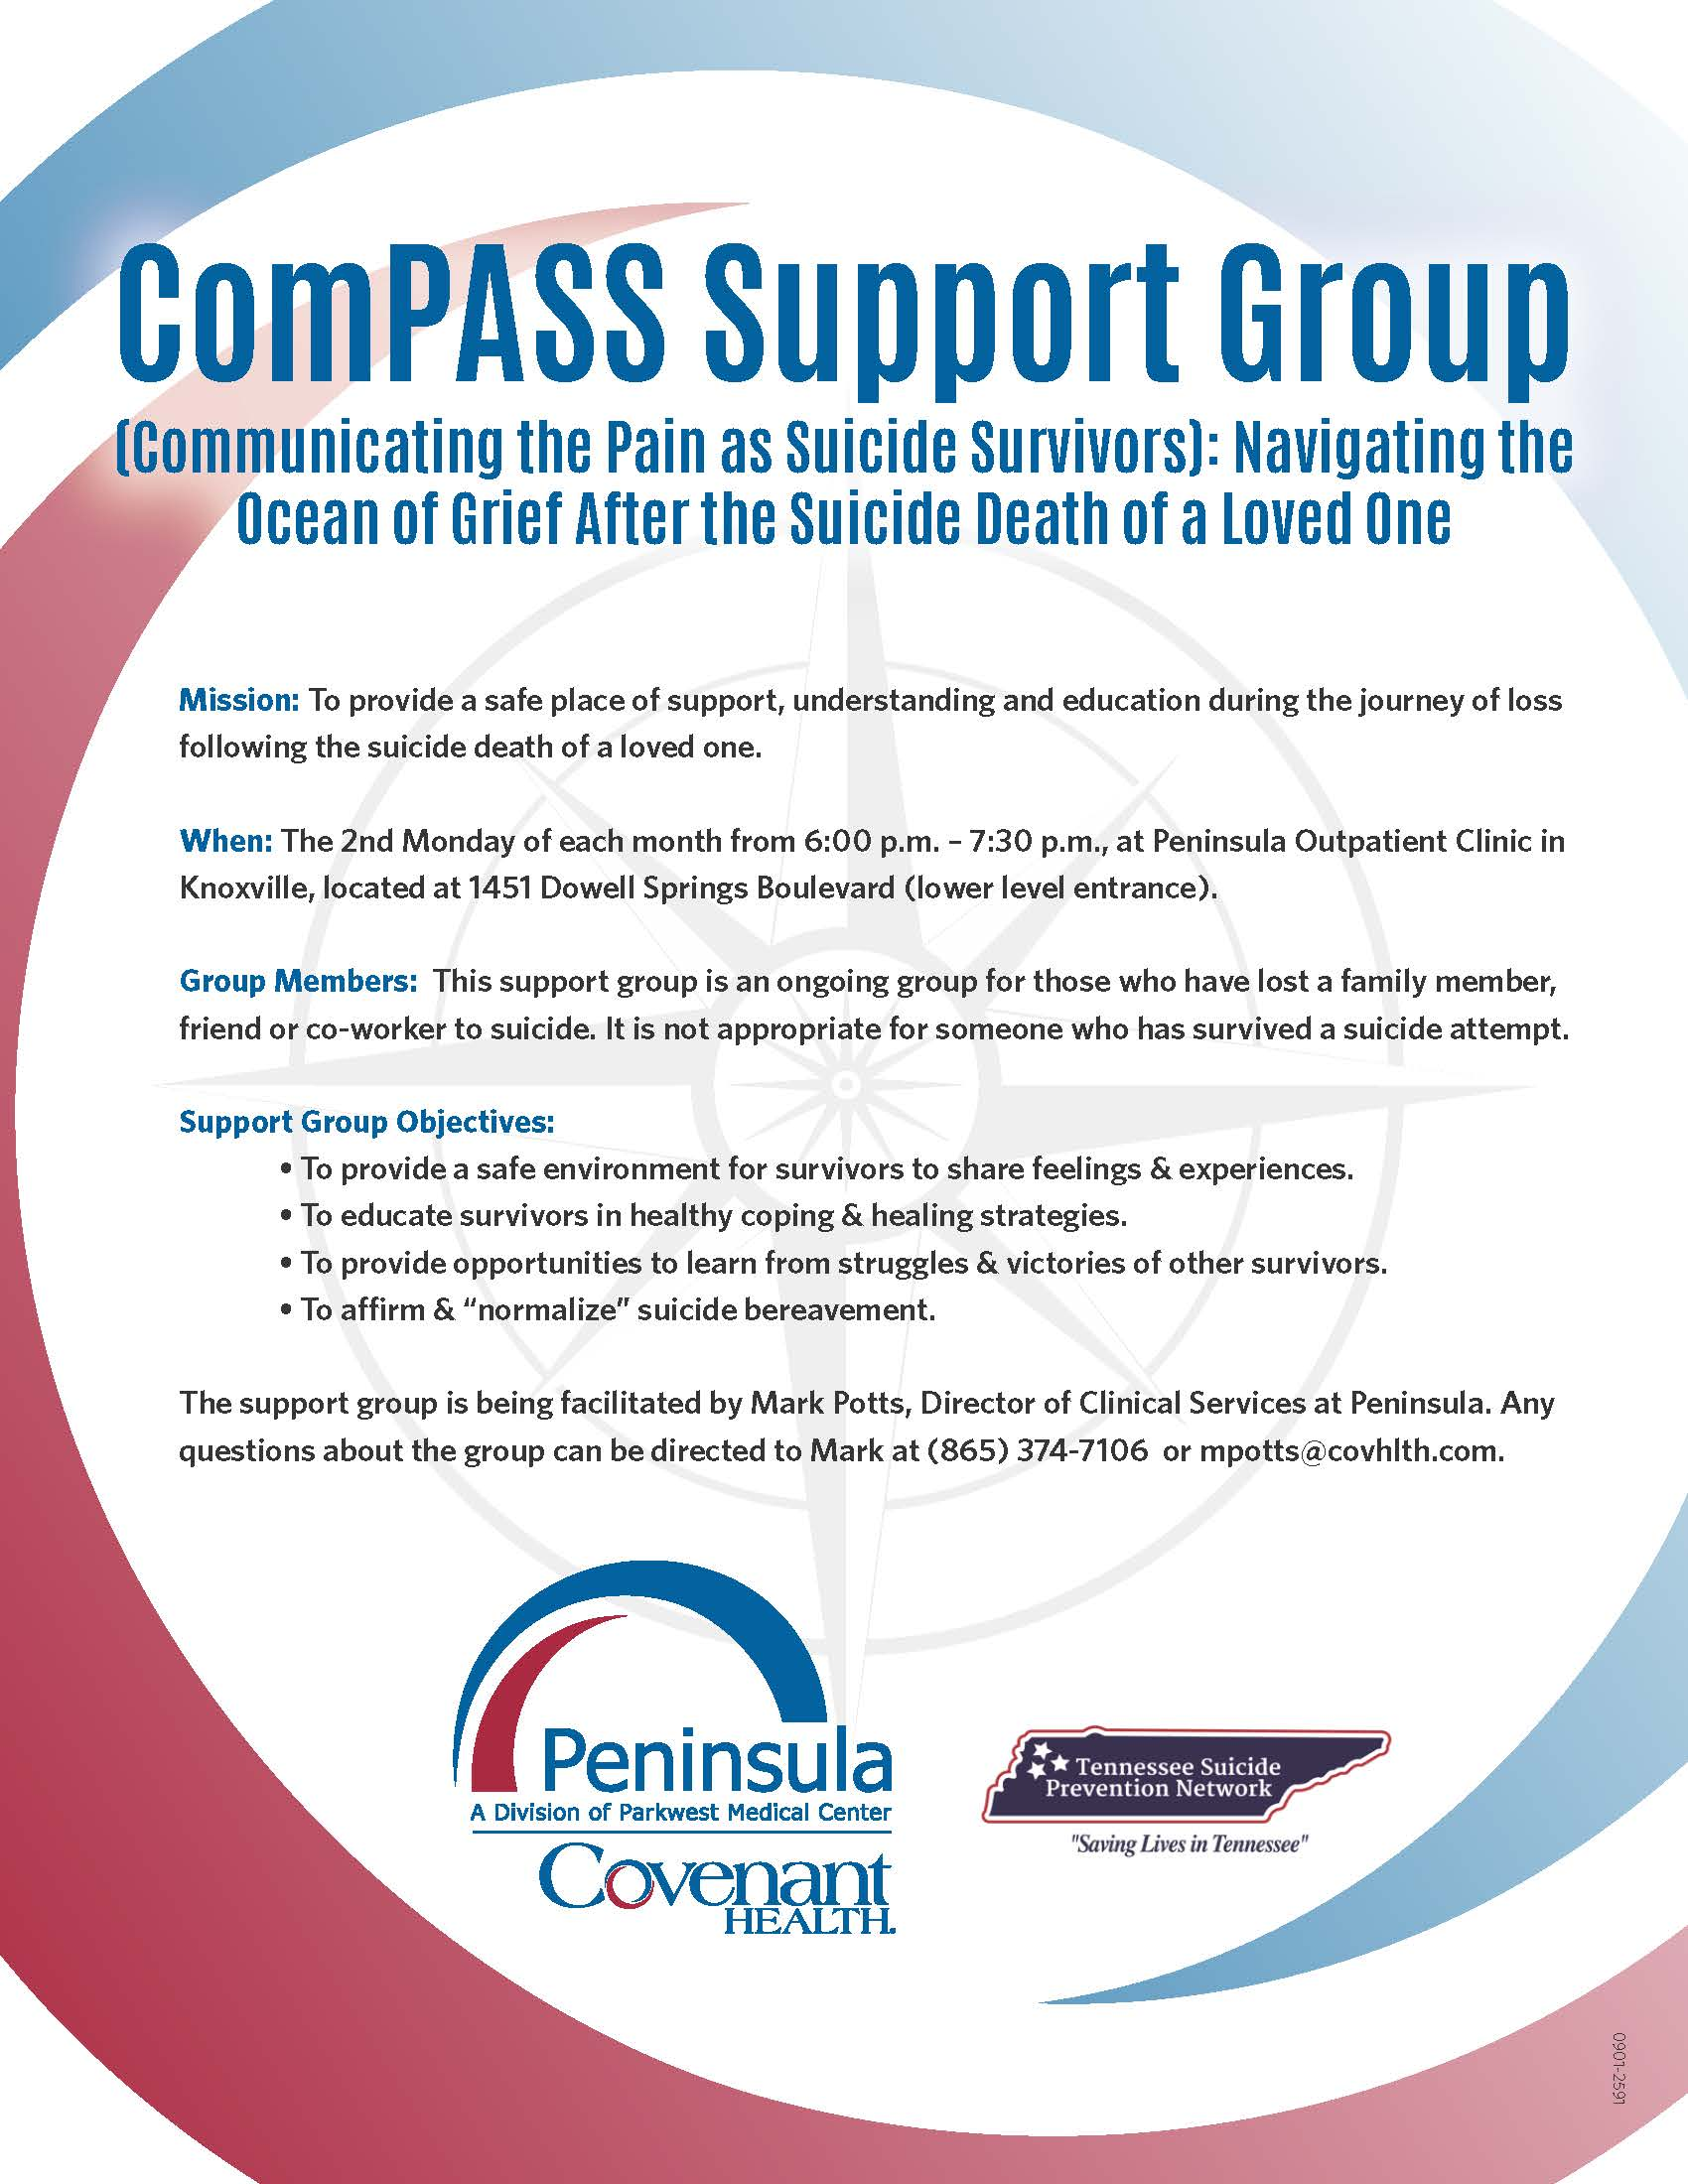 ComPASS Support Group Flier Listing all details of monthly meetings.